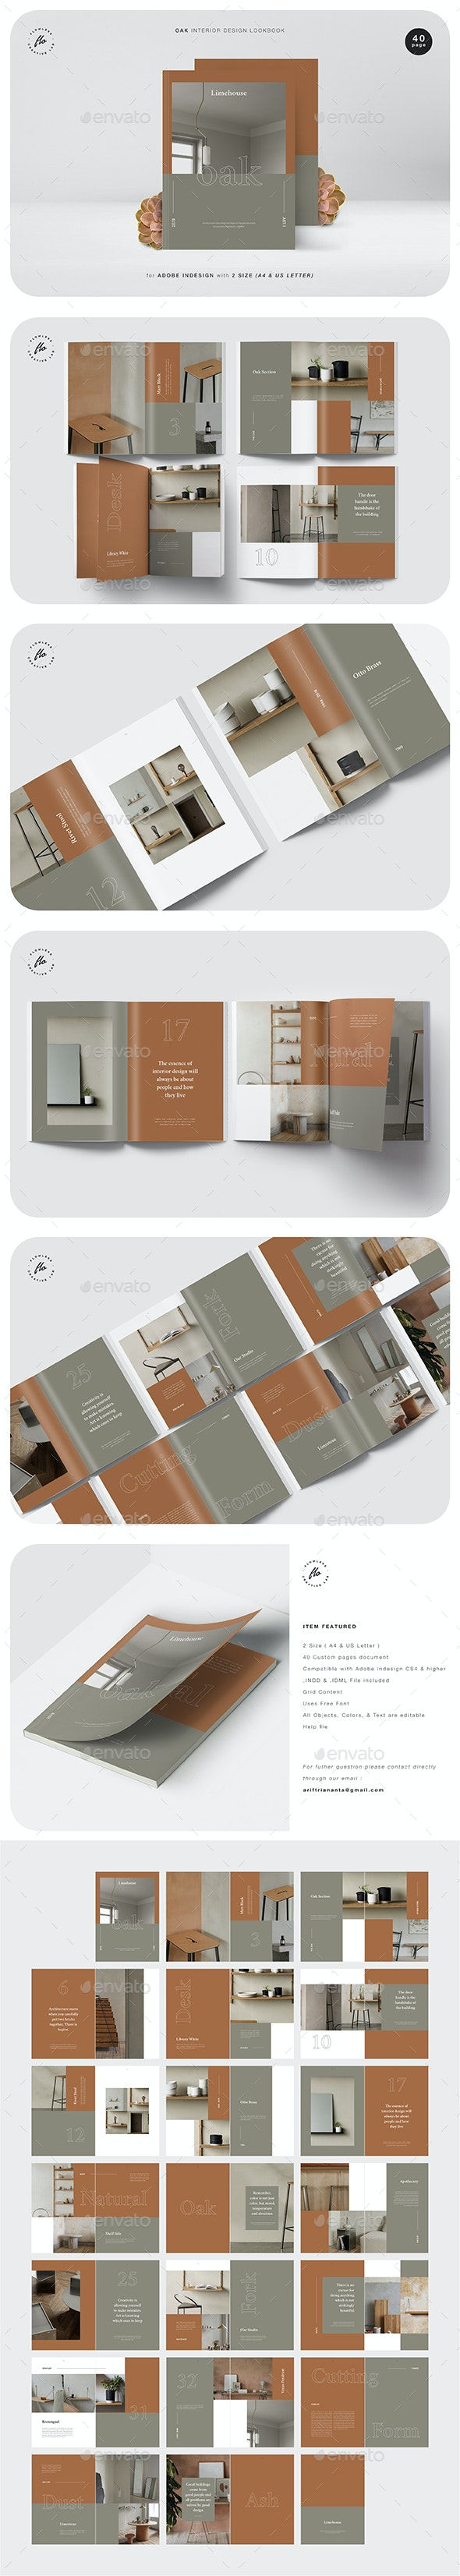 Oak Interior Design Lookbook - Magazines Print Templates